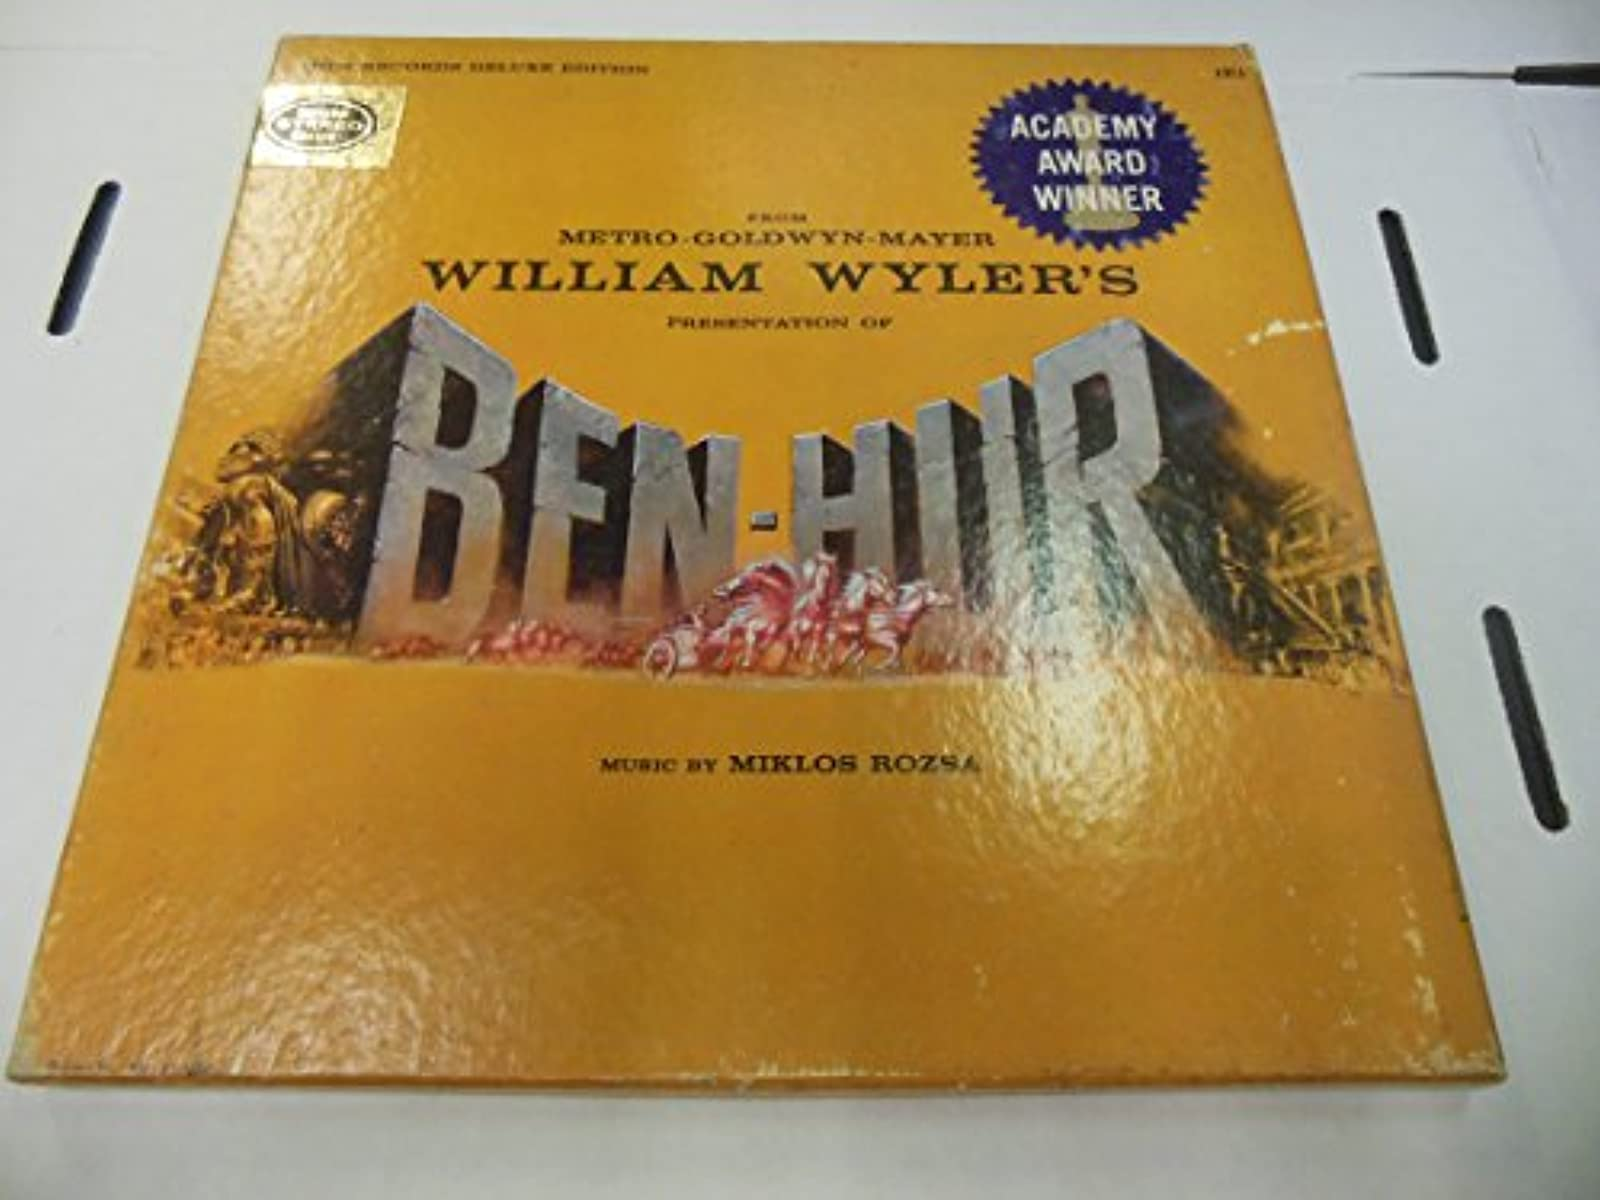 From Metro-Goldwyn-Mayer William Wylers Presentation Of Ben-Hur Music By Miklos